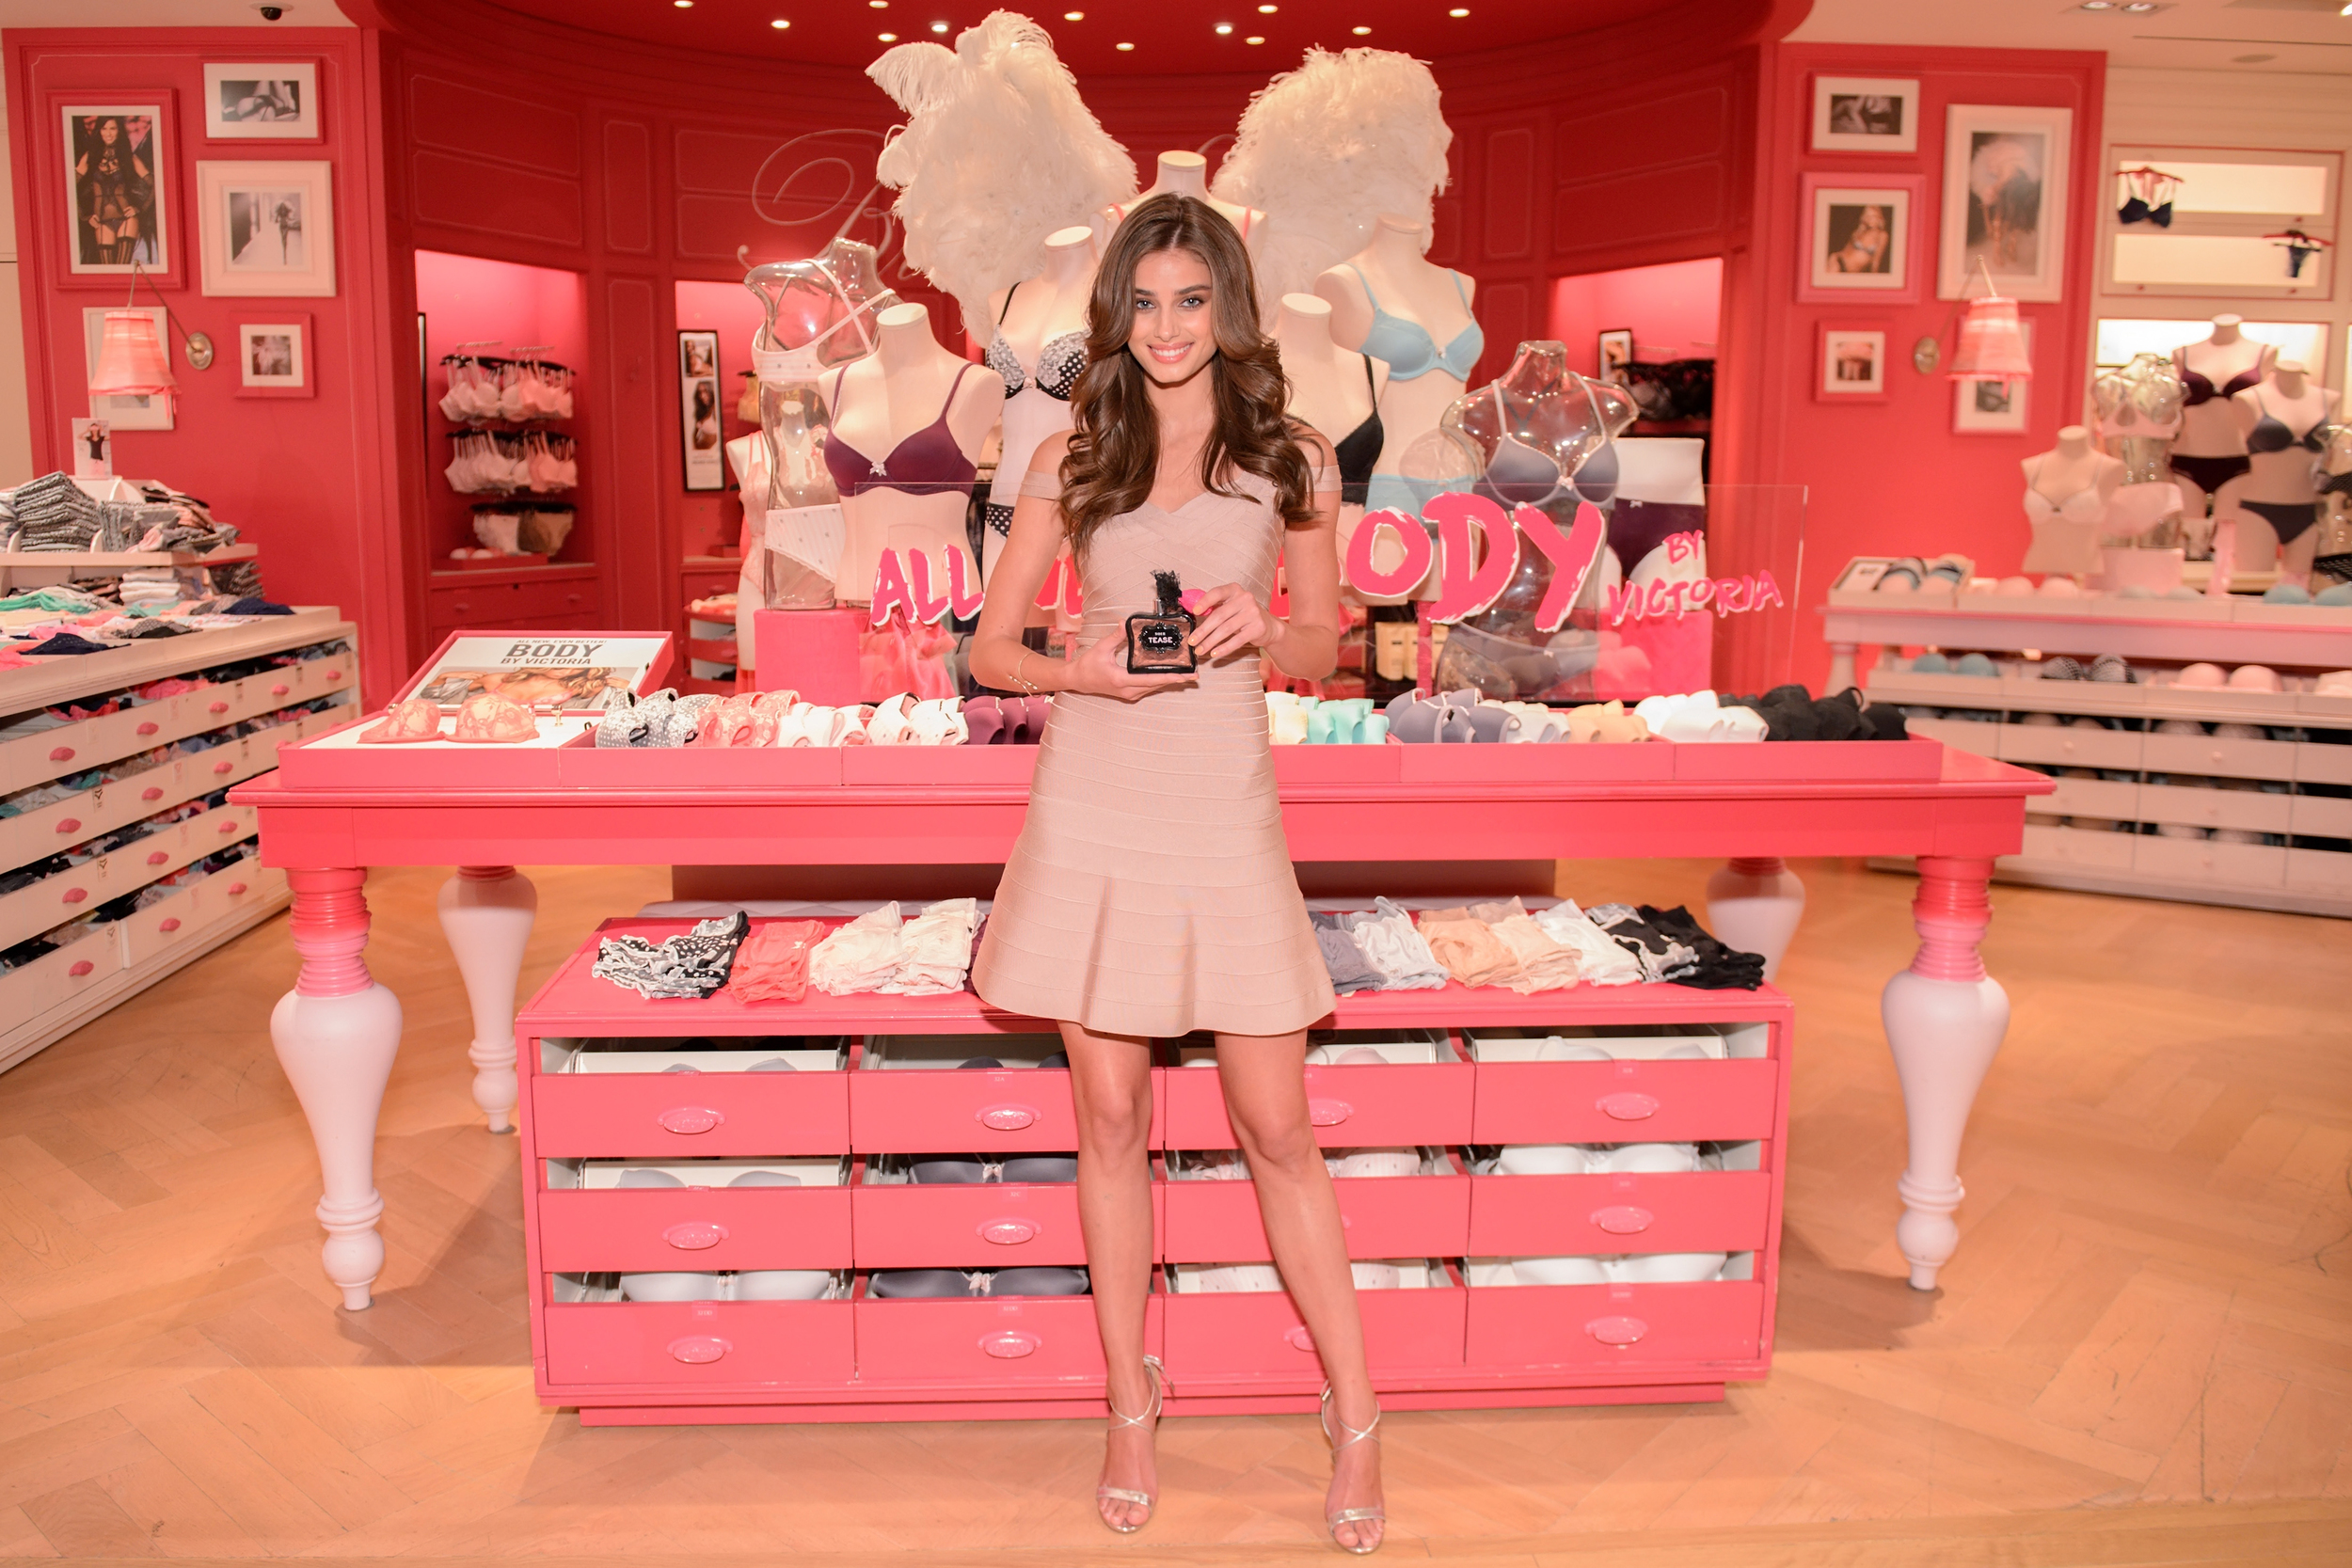 tease-2015-taylor-hill-eau-de-parfum-victorias-secret-beauty-hi-res.jpg